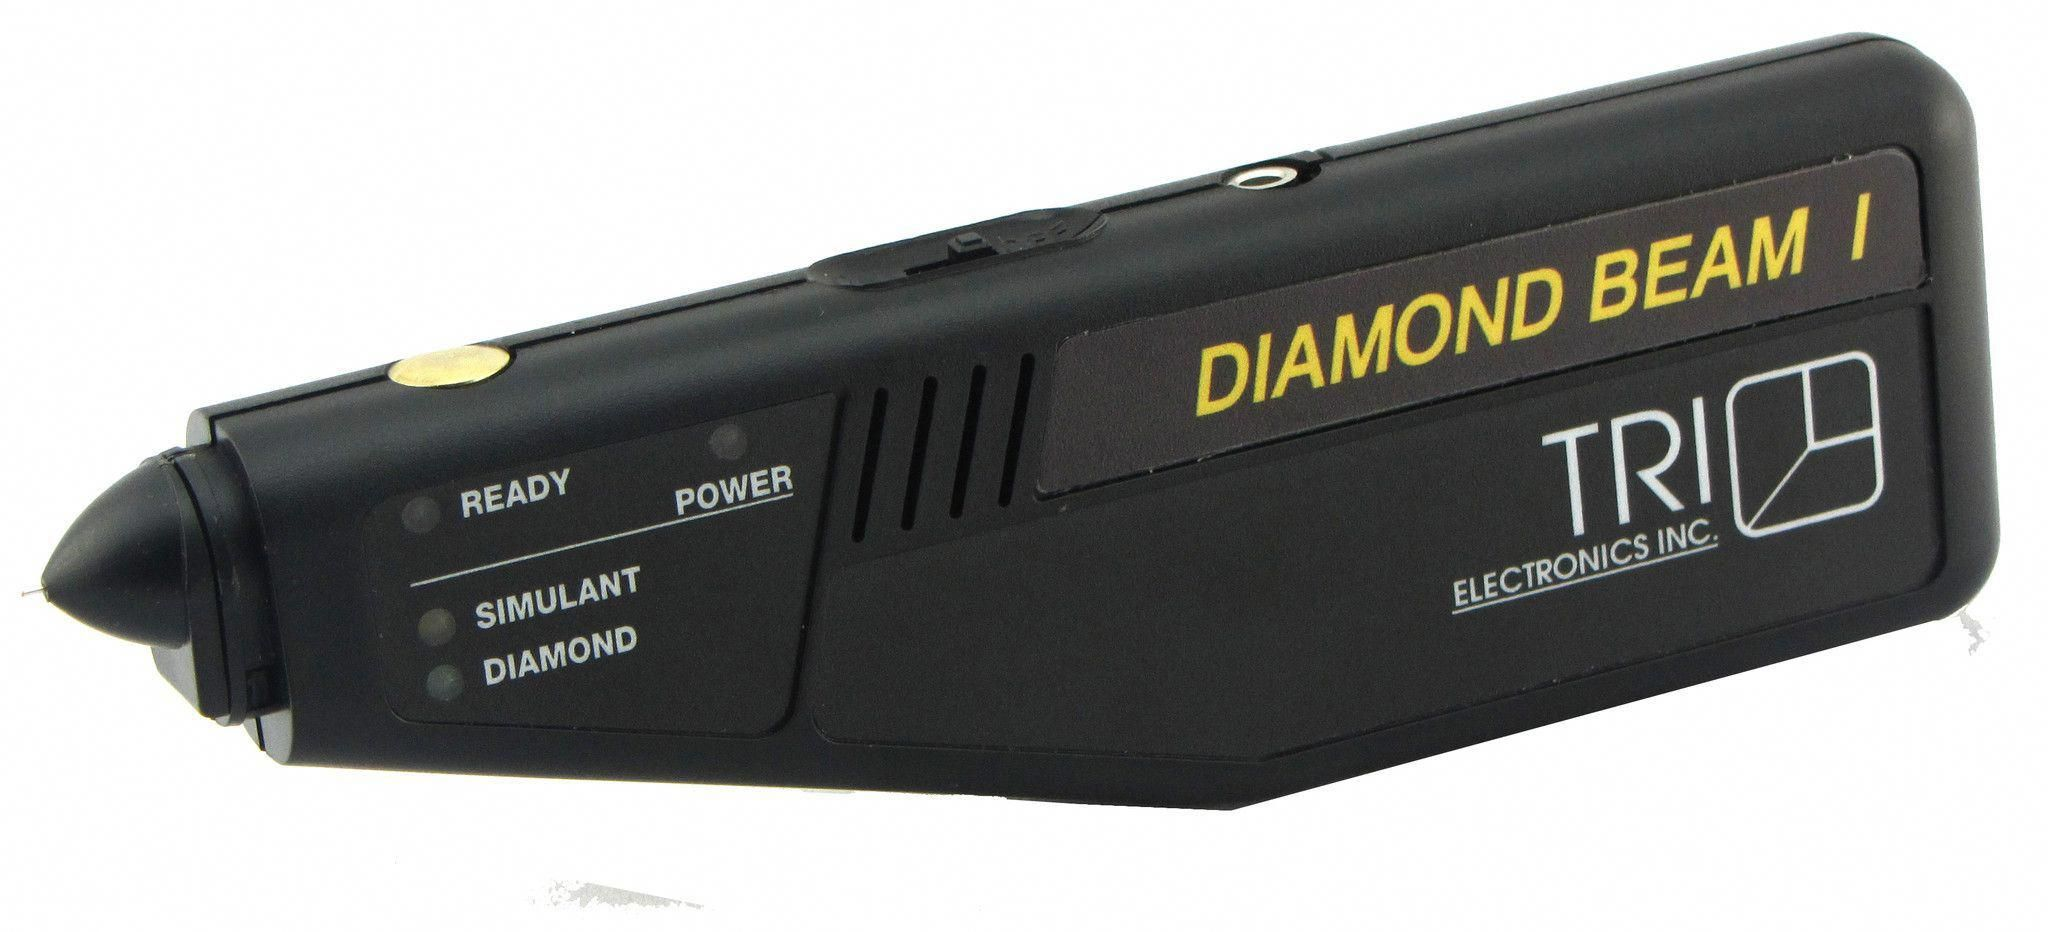 - Diamond Beam I Is a Unique Instrument, Which Separates Real Diamonds from Imitation Ones. - This Instrument Will Identify Such Small Diamonds As From .06 Down To .01 Carats. - Powerful Battery Provides Long Use Before Recharging. - Test Down To 1 Point. - Light Emitting Diodes On Both Sides Make It Easy To Use For Both Right- And Left-Handed People. - Comes With 110-Volt Adapter. - Now This Unit Is Equipped With Replaceable Rechargeable Batteries. - The #lightemittingdiode